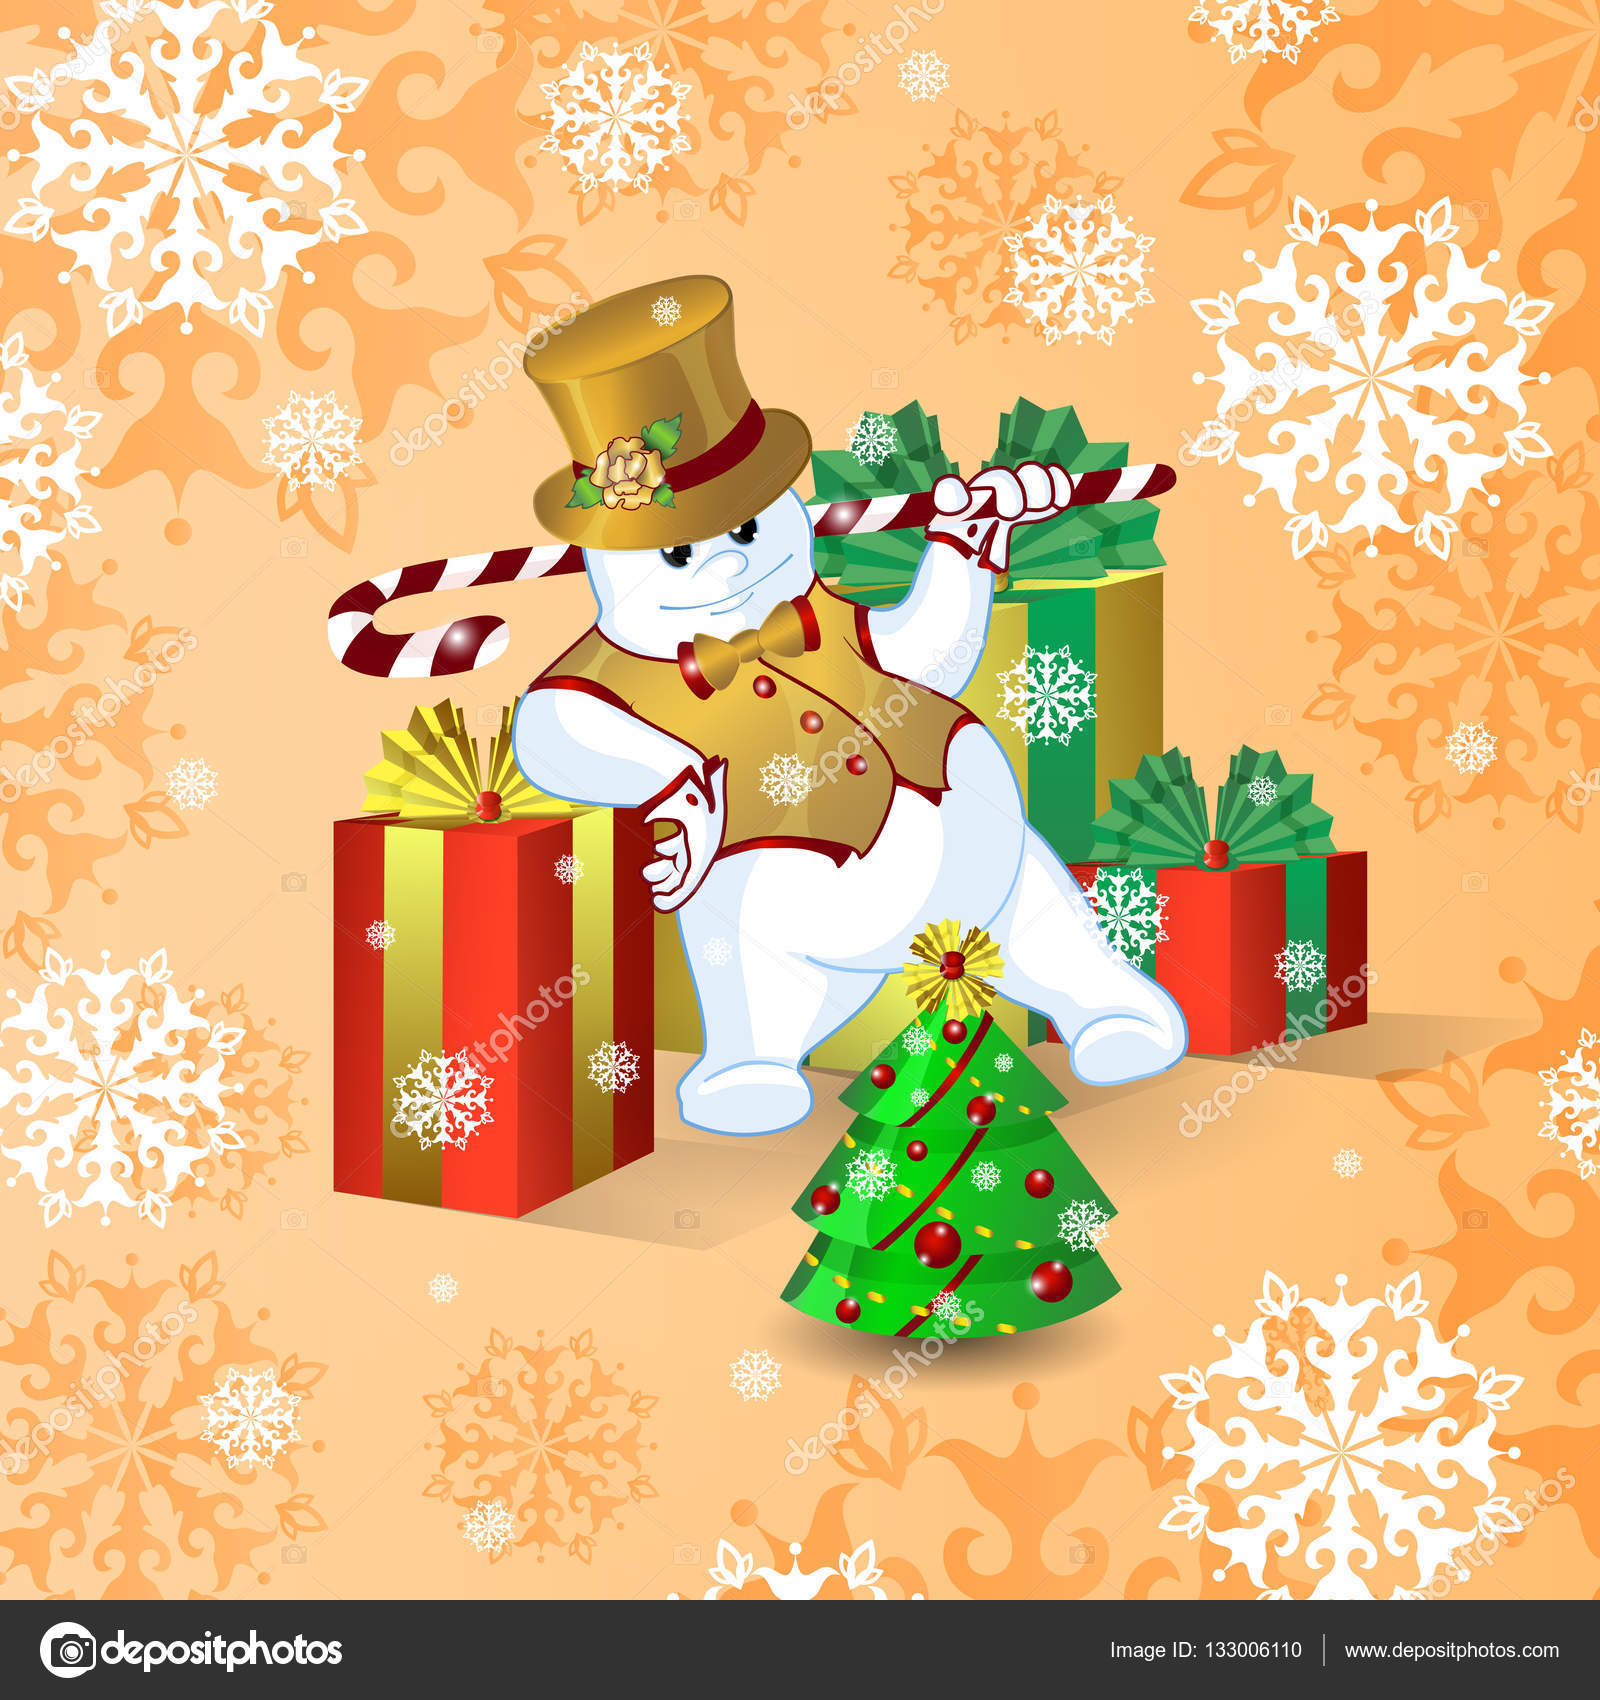 vector card for christmas or new year dancing snowman in a gold top hat and waistcoat with a stick of candy near the large bright boxes with gifts and a